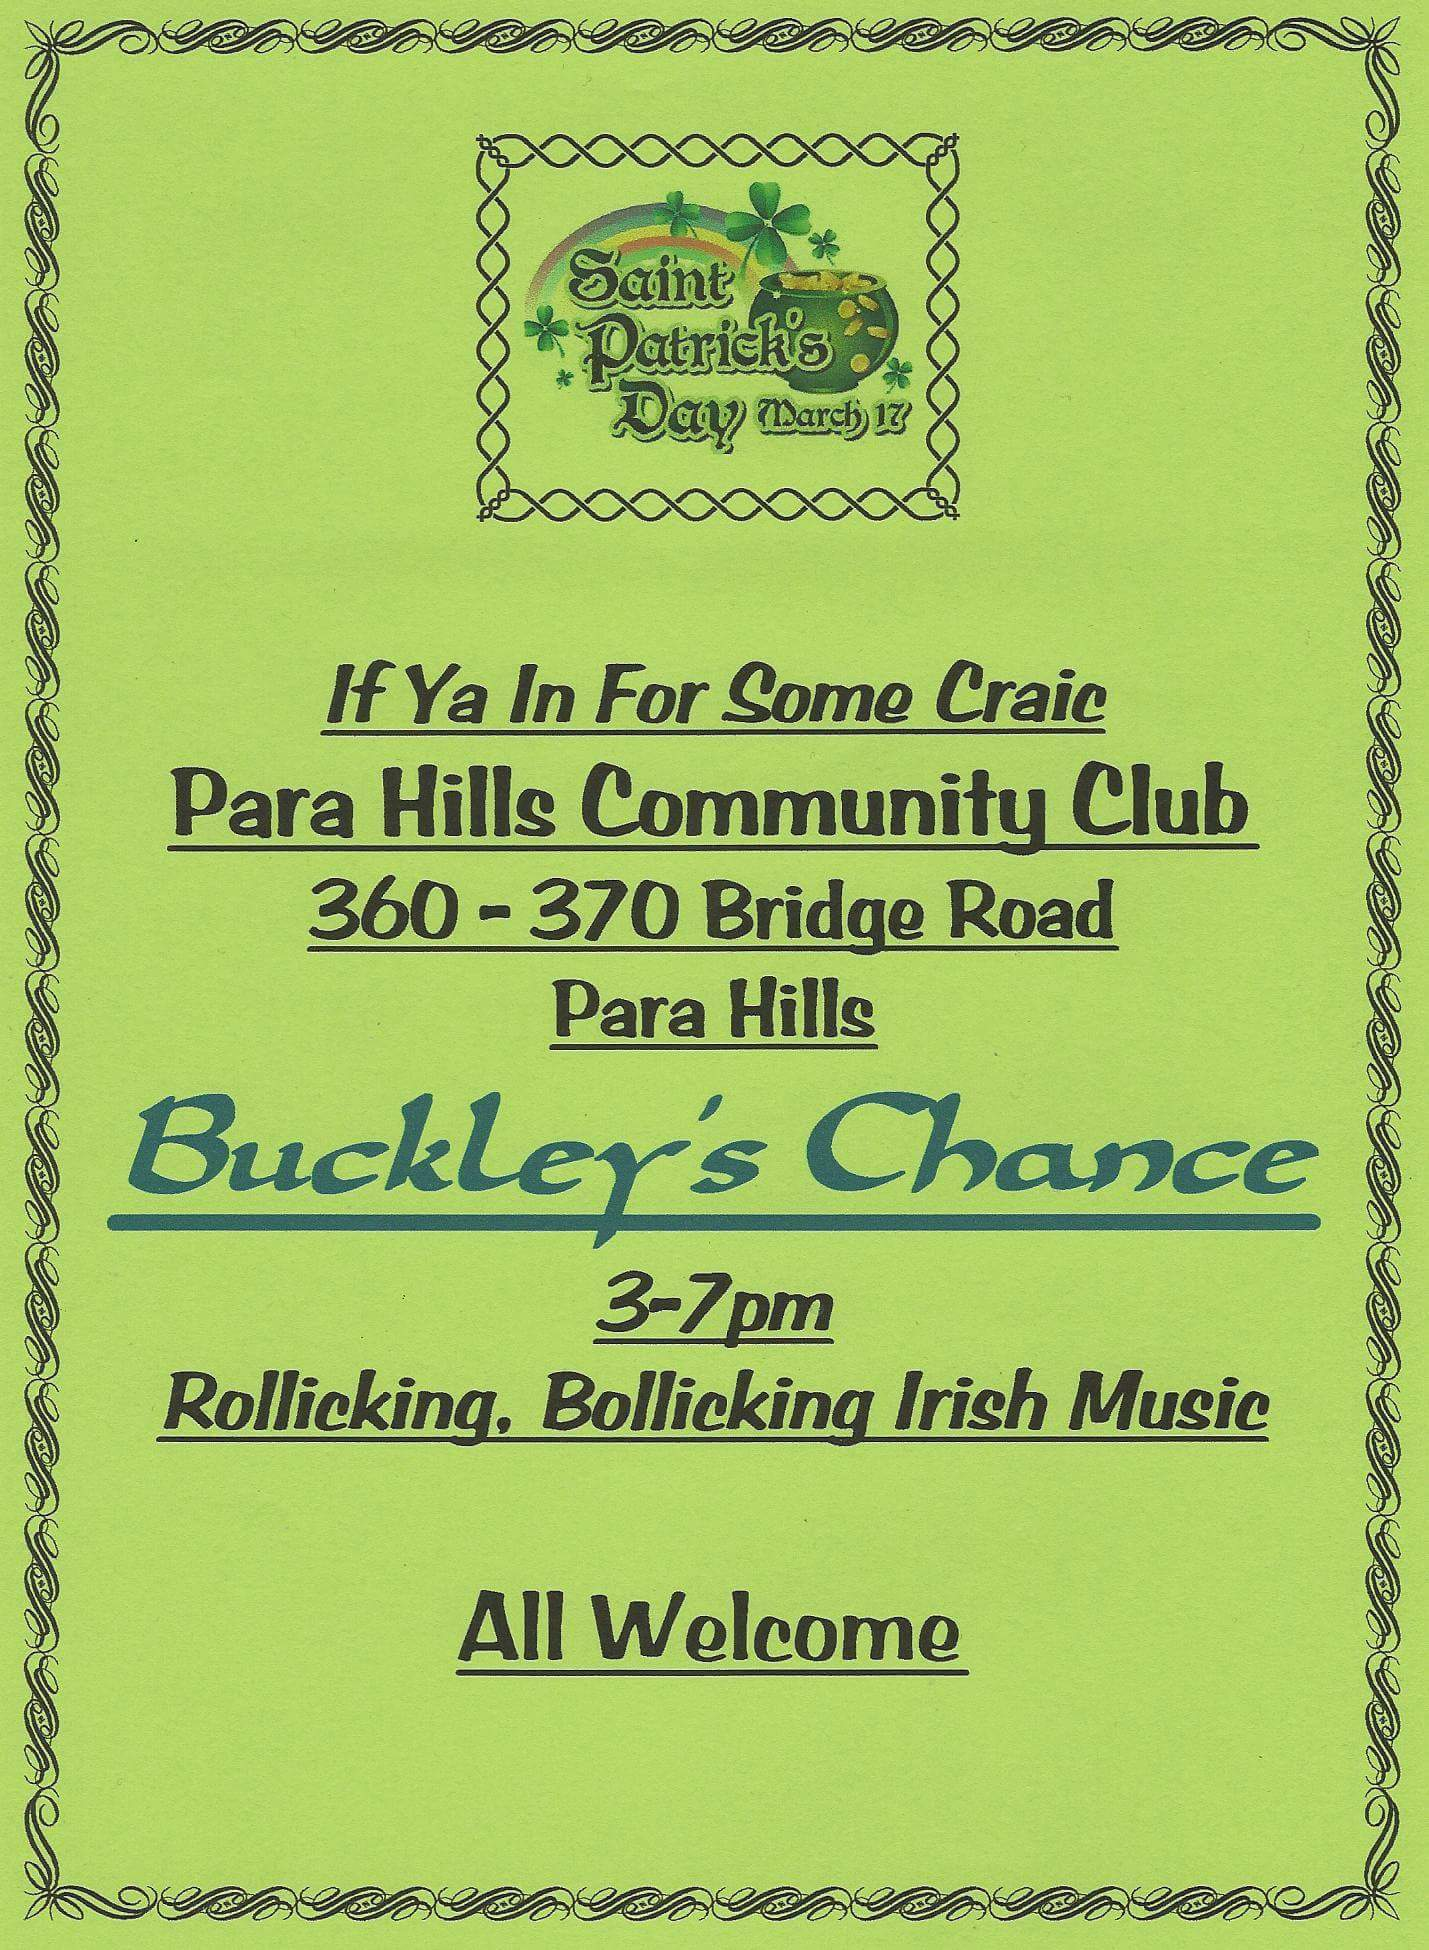 Buckleys Chance St Pats